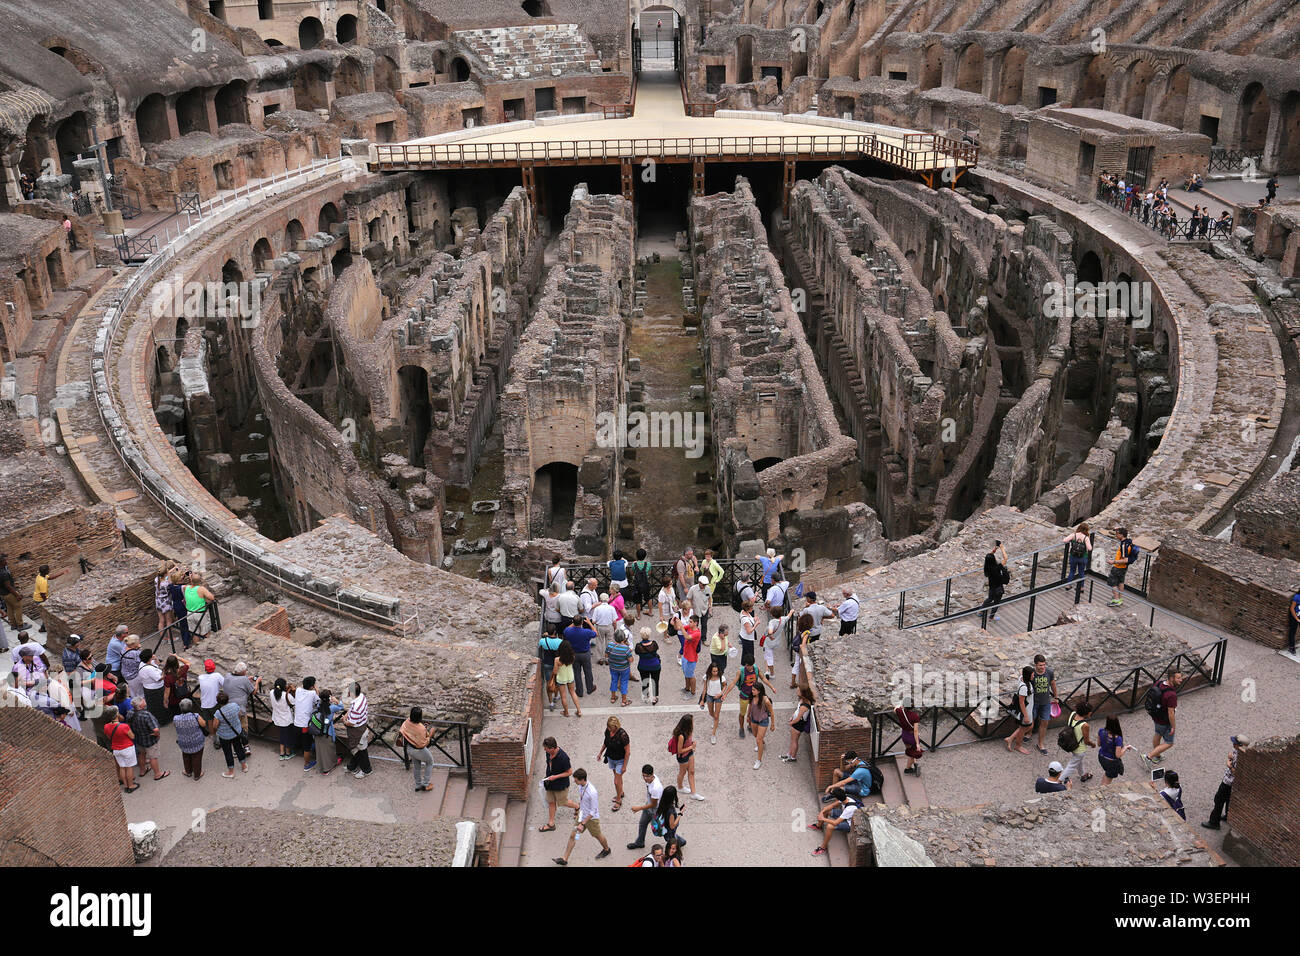 ROME, ITALY, JUNE 16, 2015 : architectural details of Colosseum amphitheatre, june 16, 2015, in Rome, Italy - Stock Image